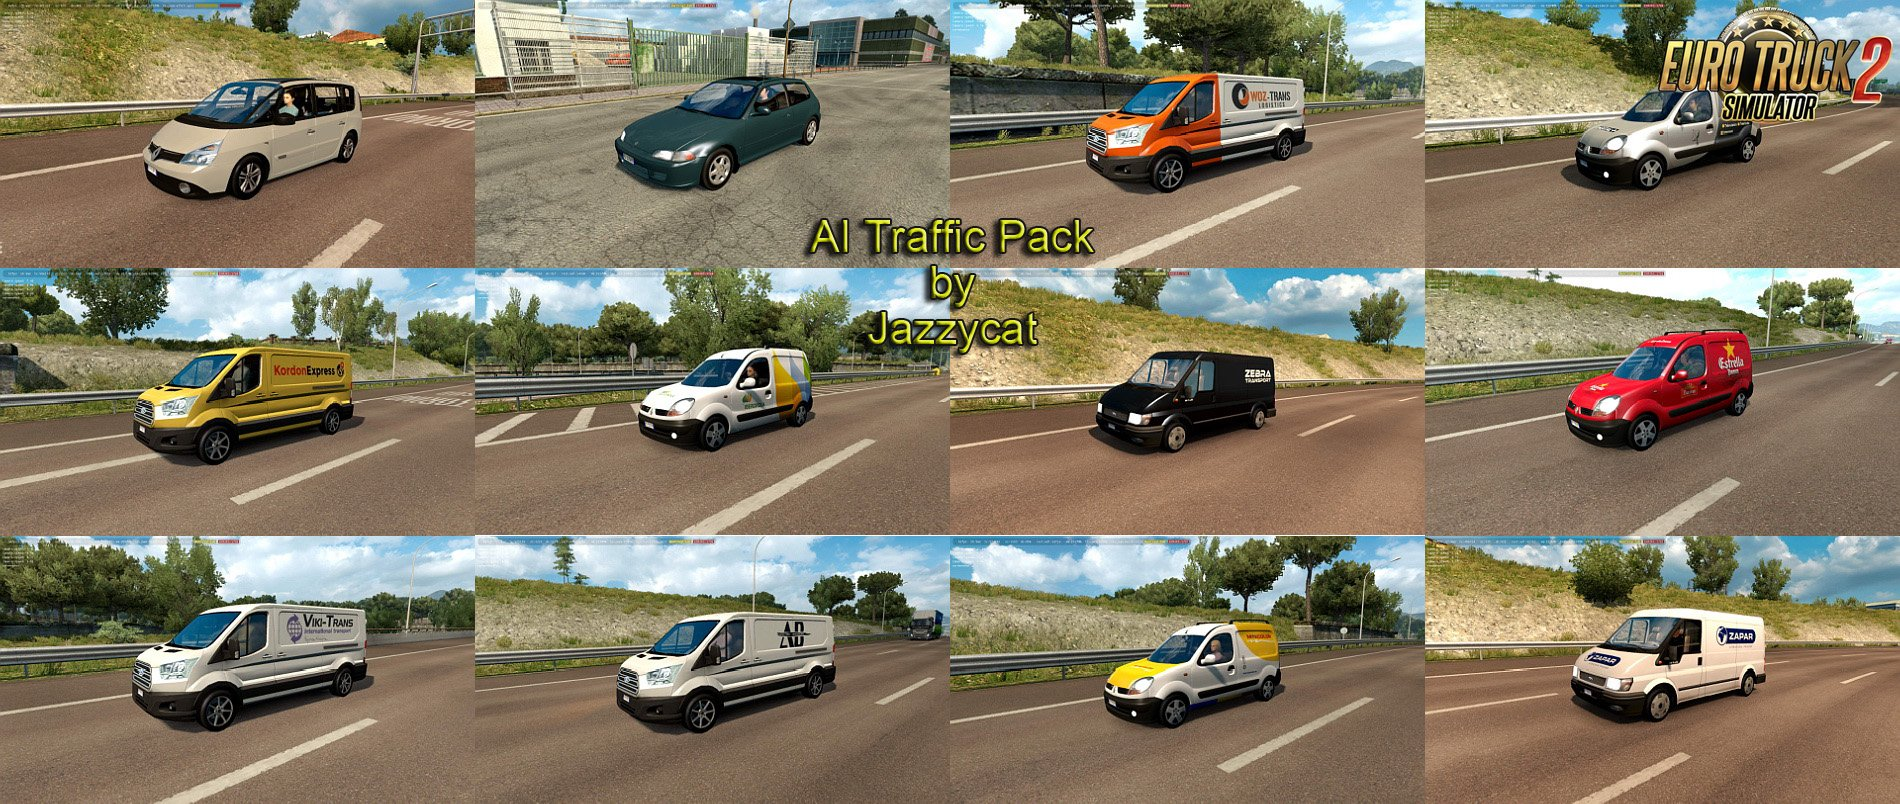 AI Traffic Pack v7.3 by Jazzycat